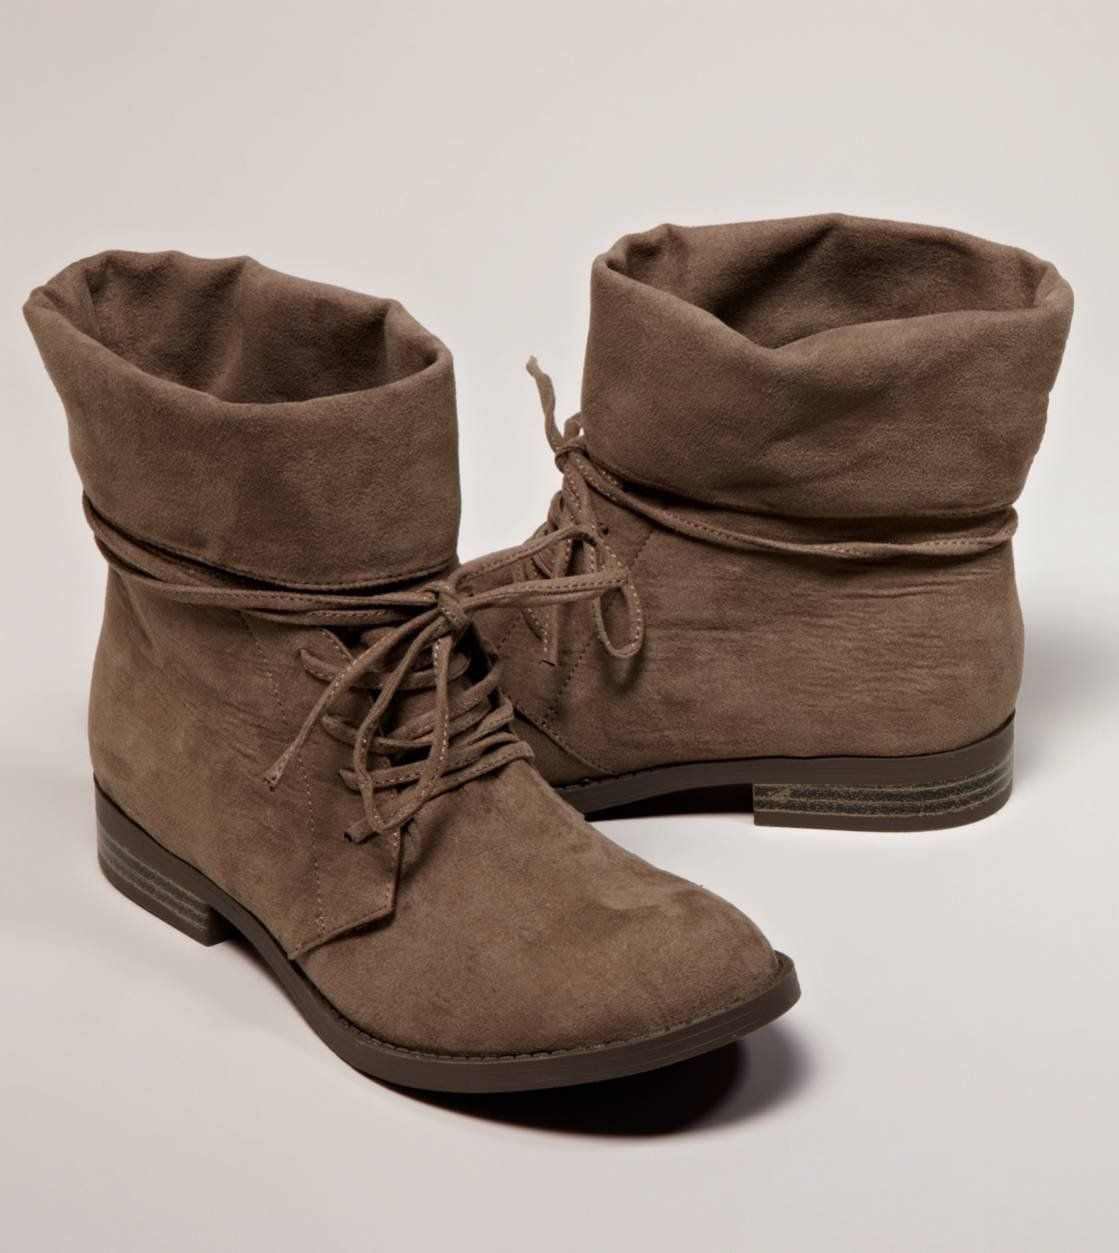 MIA Foldover Suede Bootie   American Eagle Outfitters